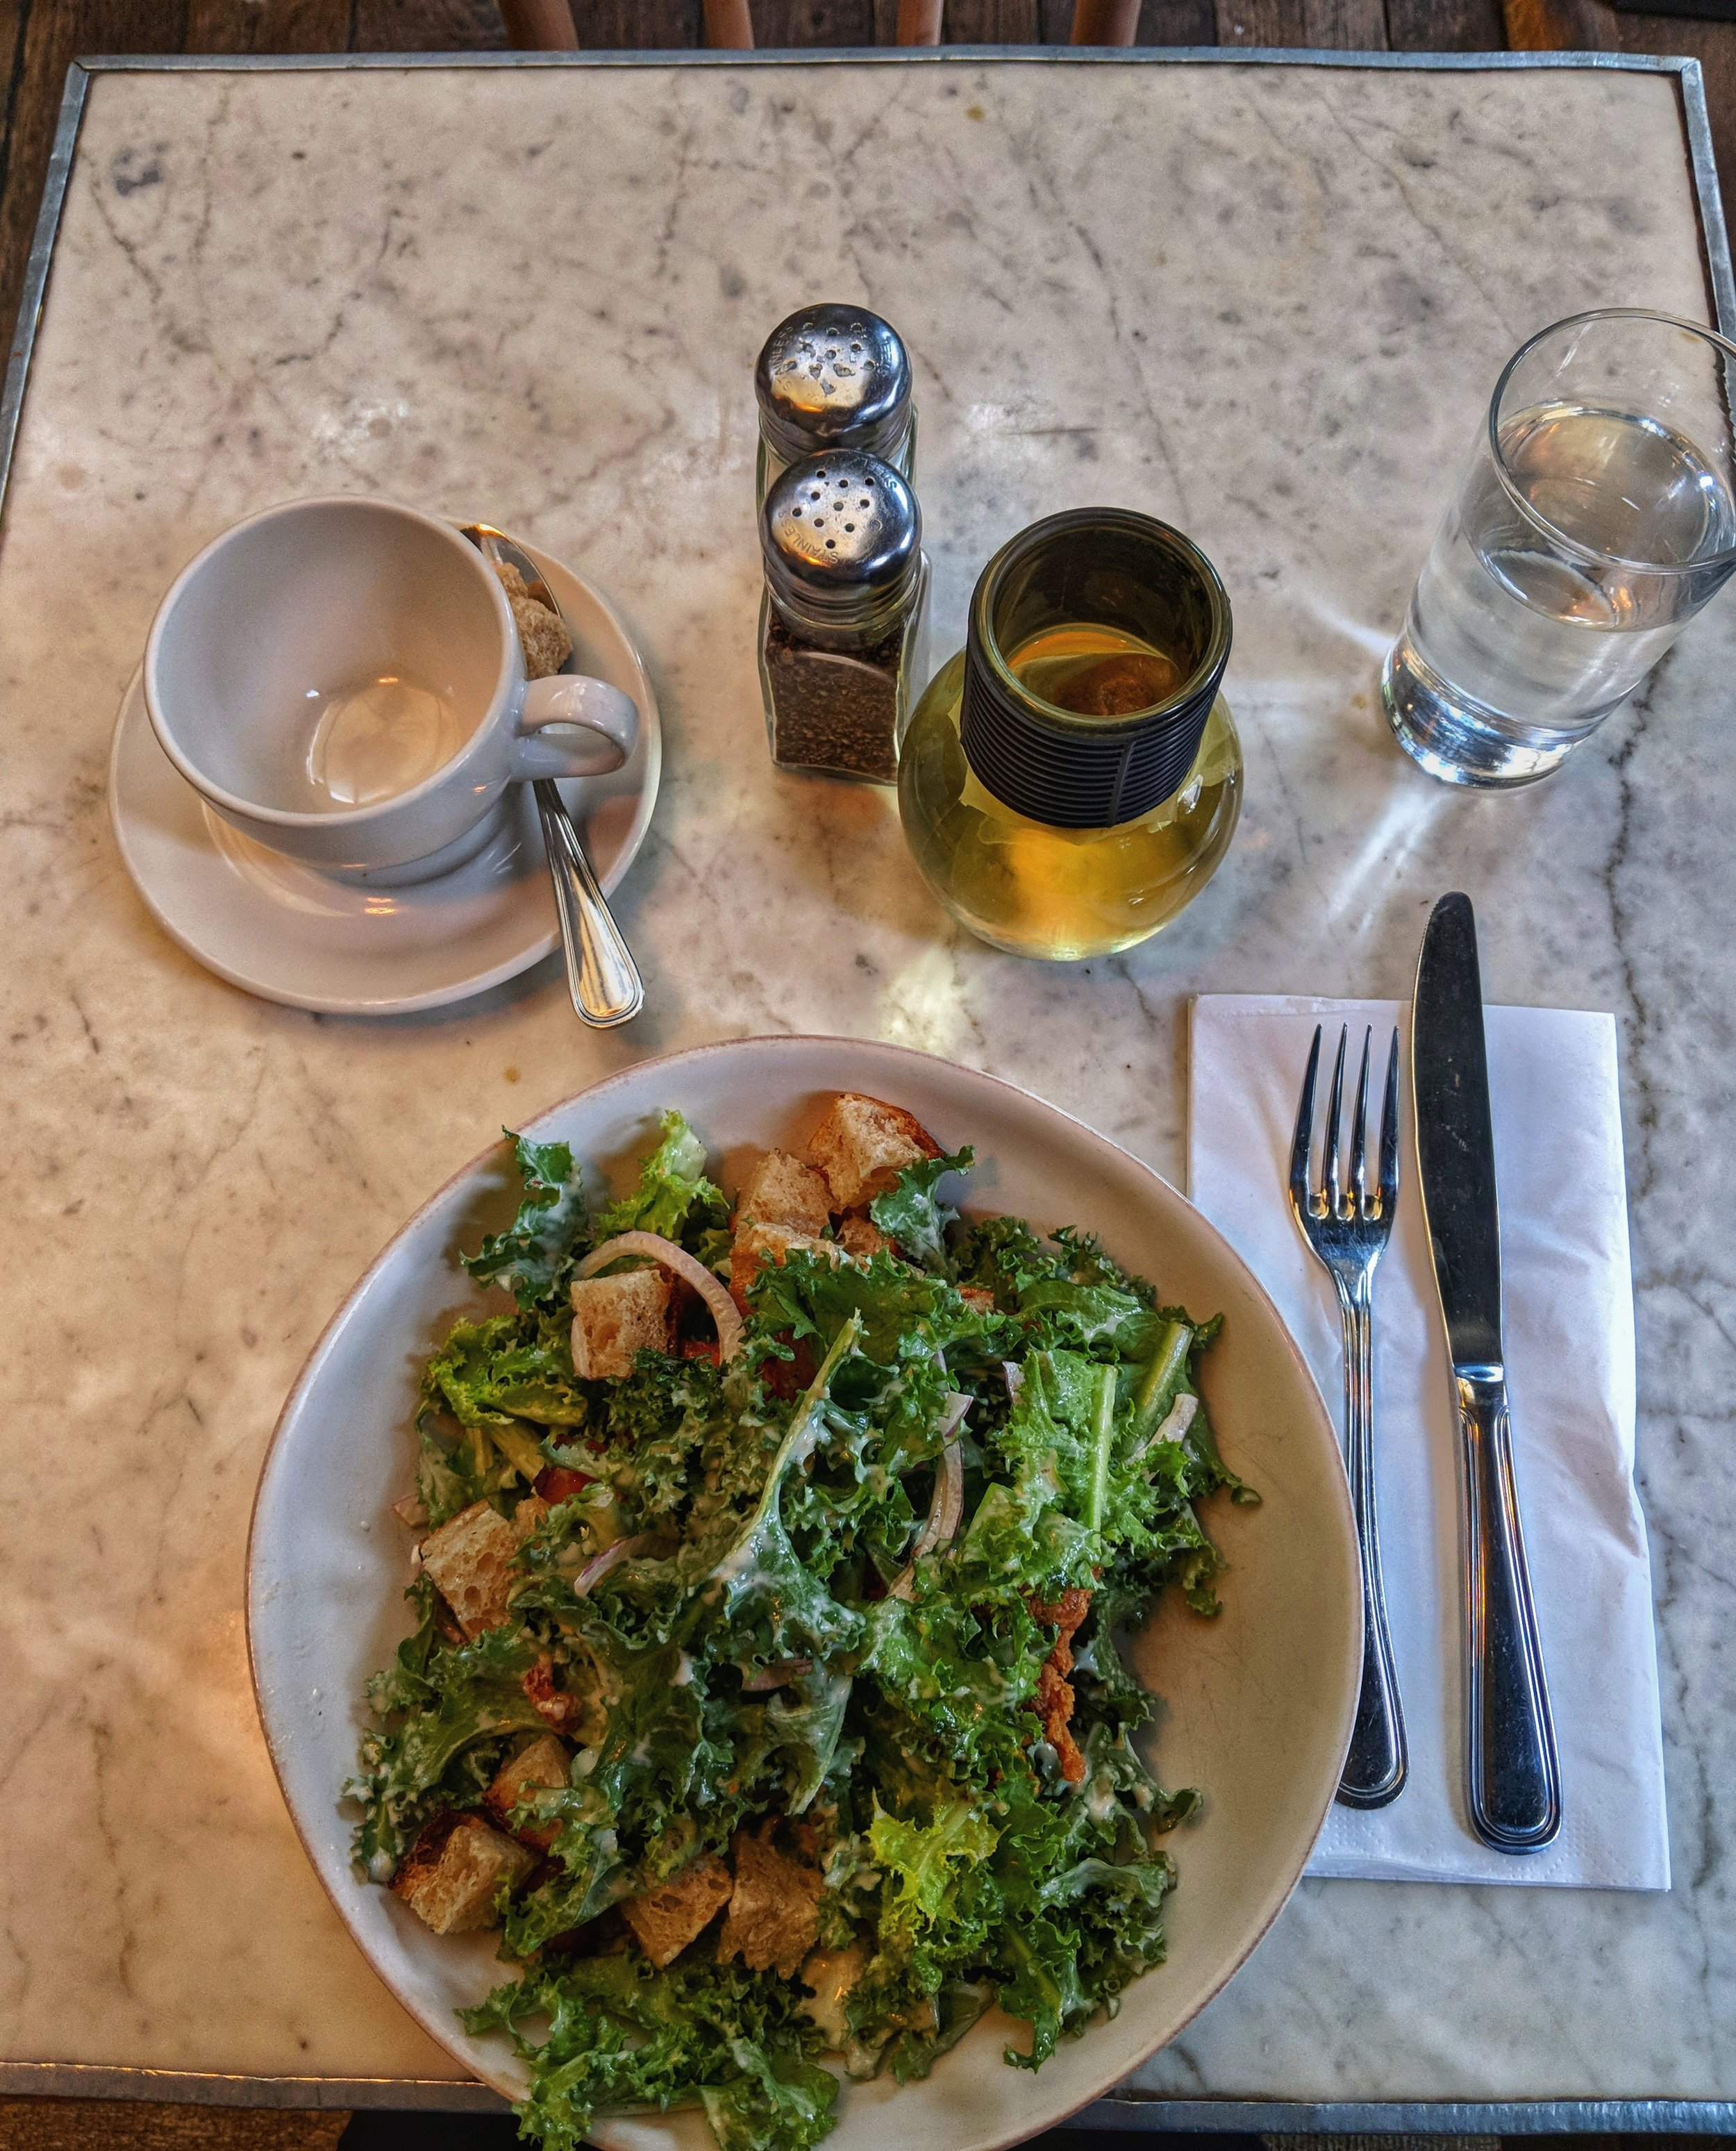 Delicious Chicory and Fried Chicken Salad with chamomile tea from   Cafe Colette   in Brooklyn, NY.